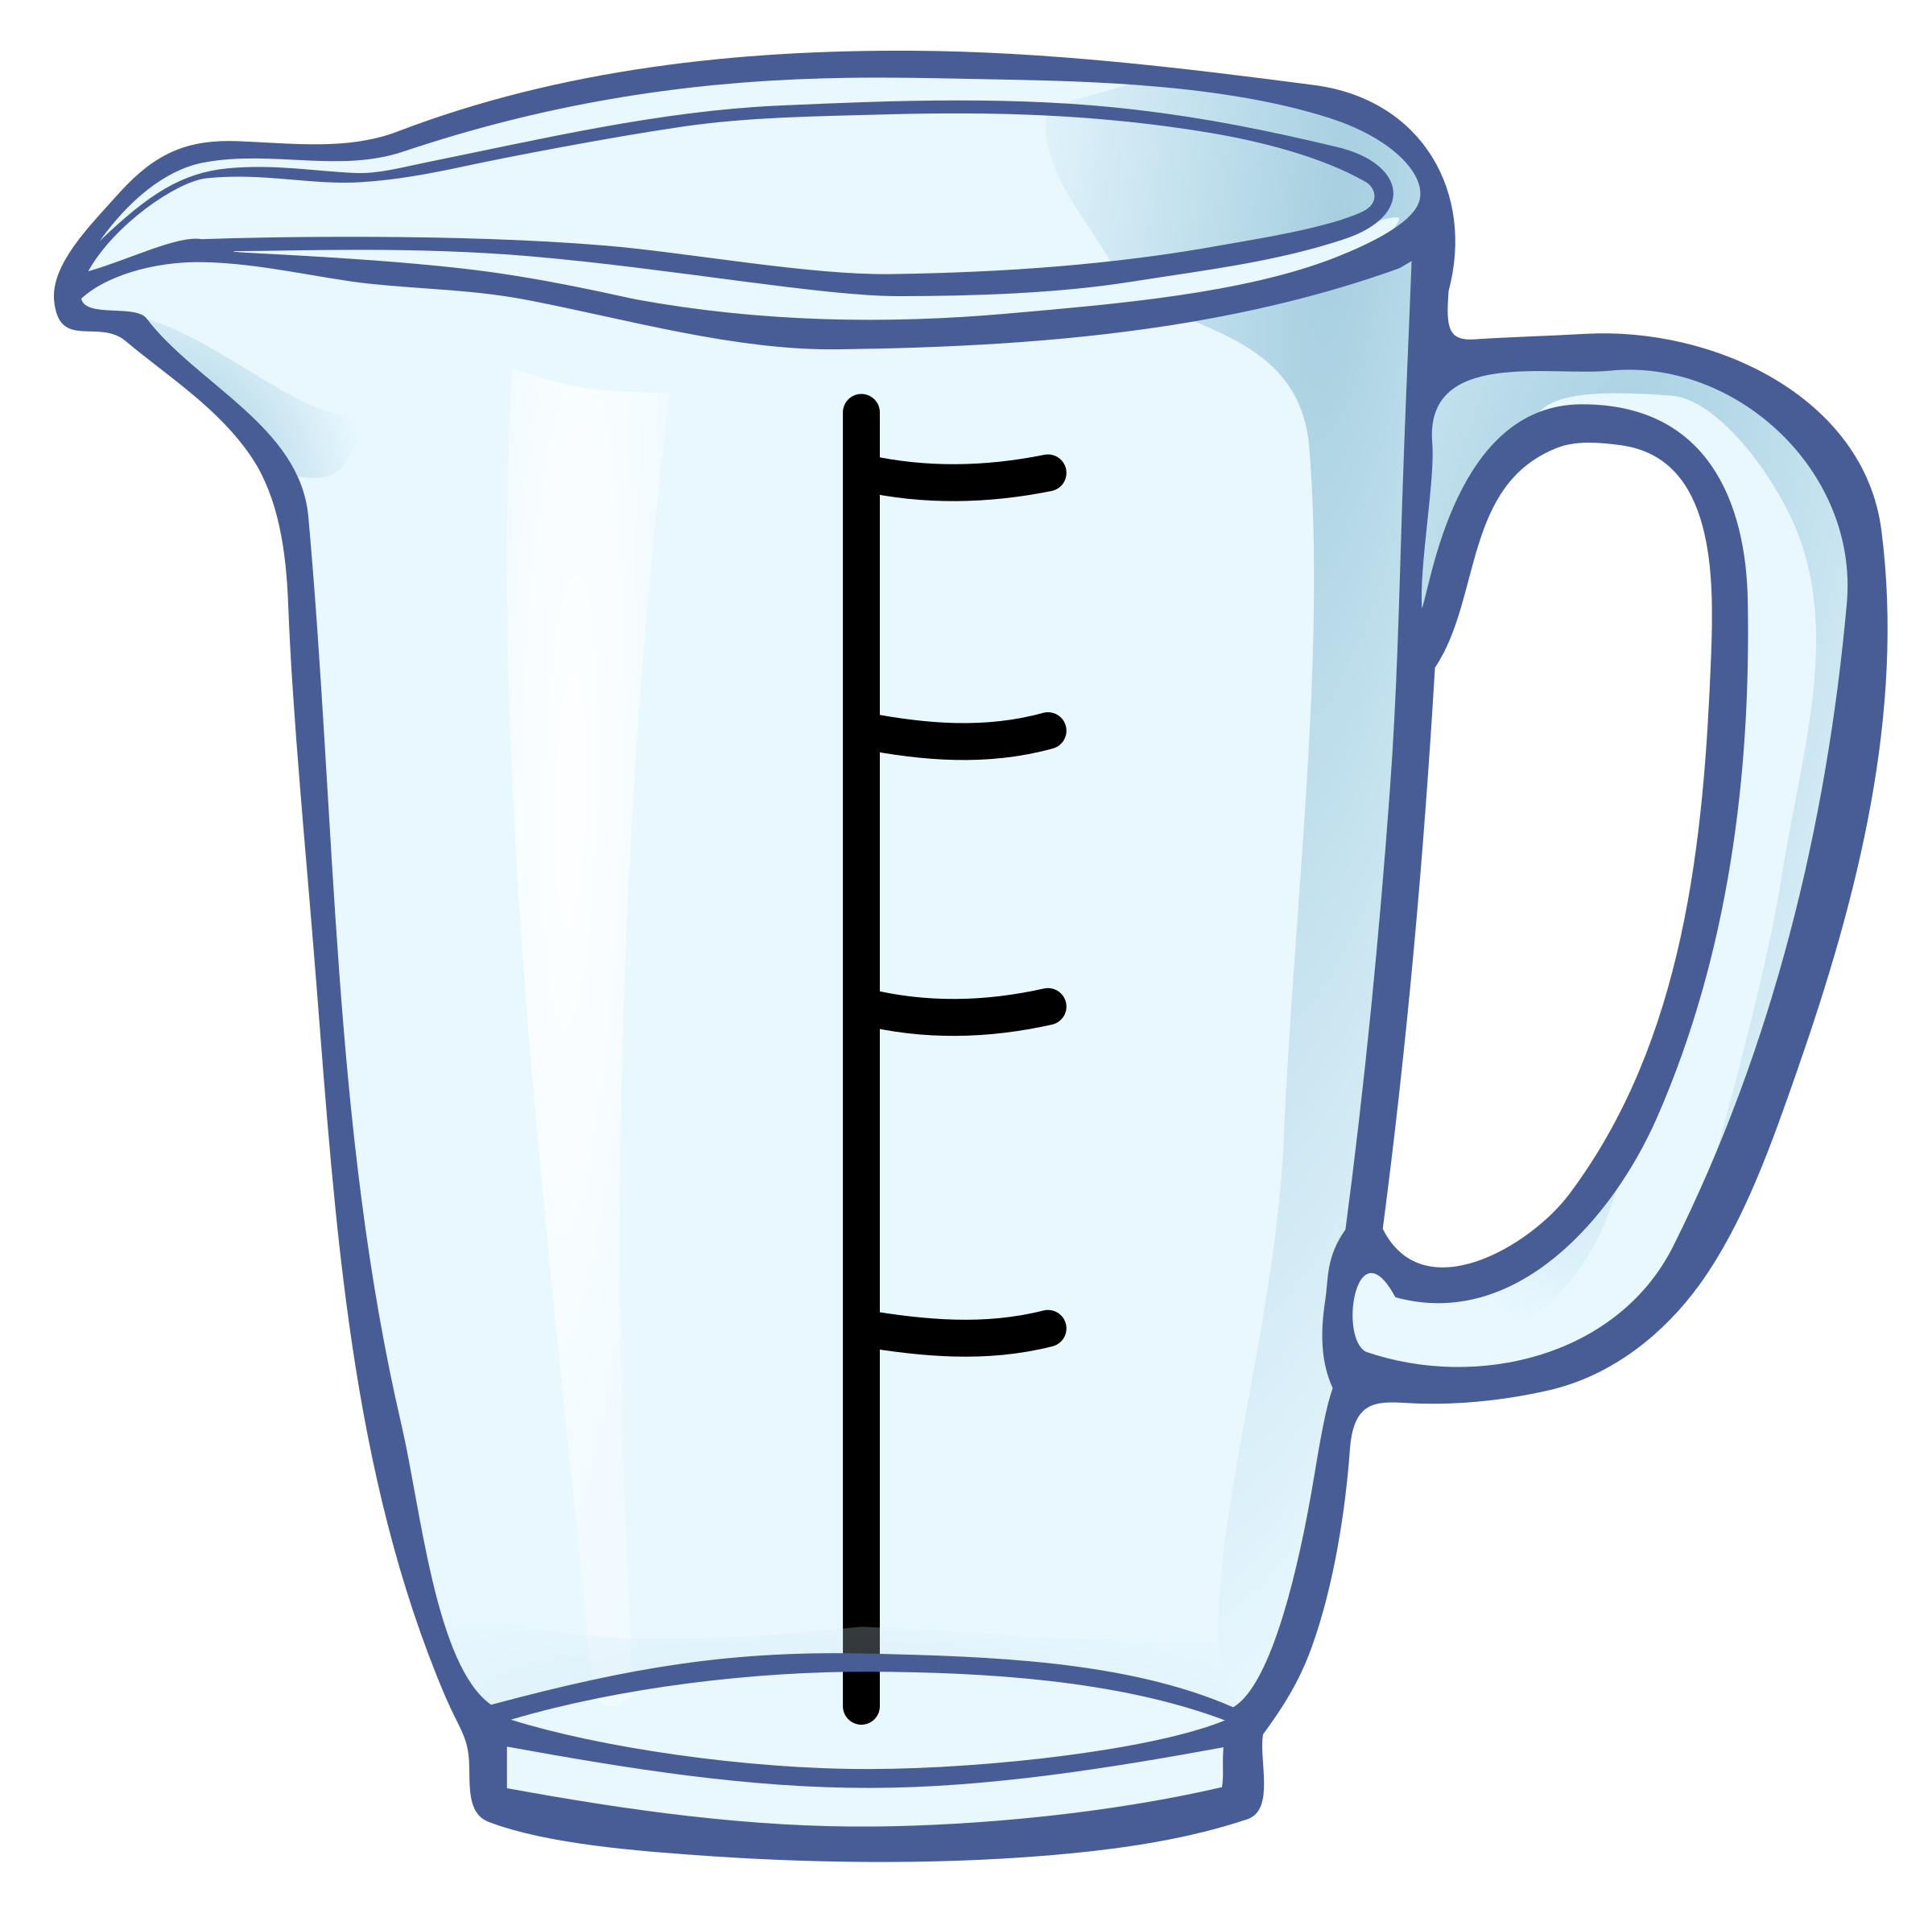 Messbecher clipart  Clipart - measuring cup - coloured